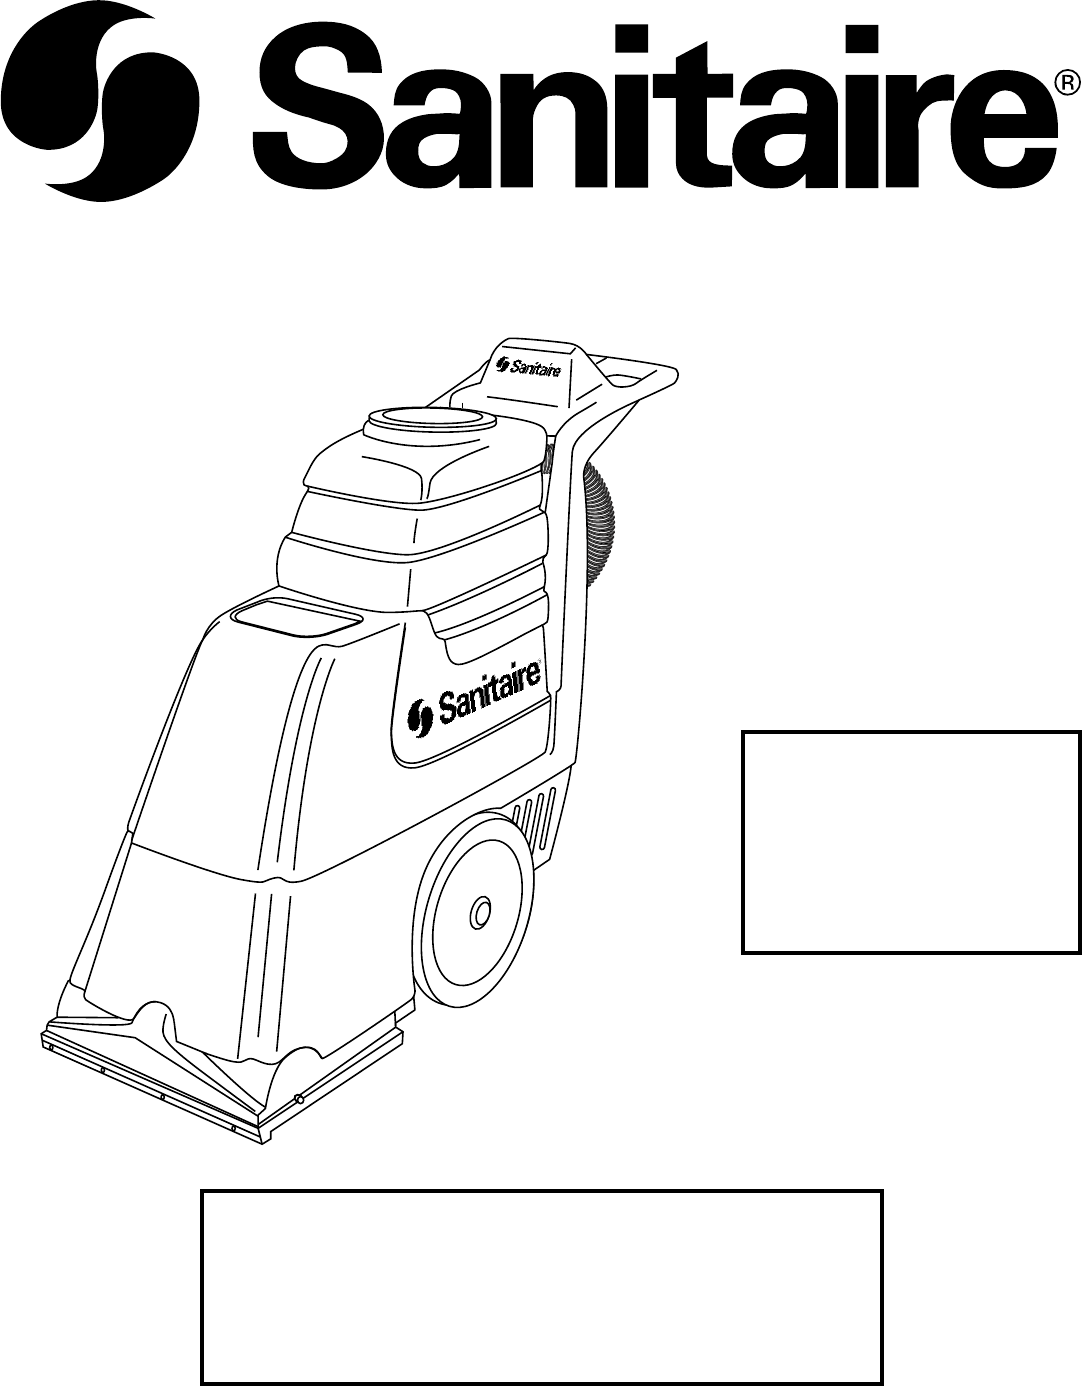 Sanitaire Carpet Cleaner SC6090 Series User Guide